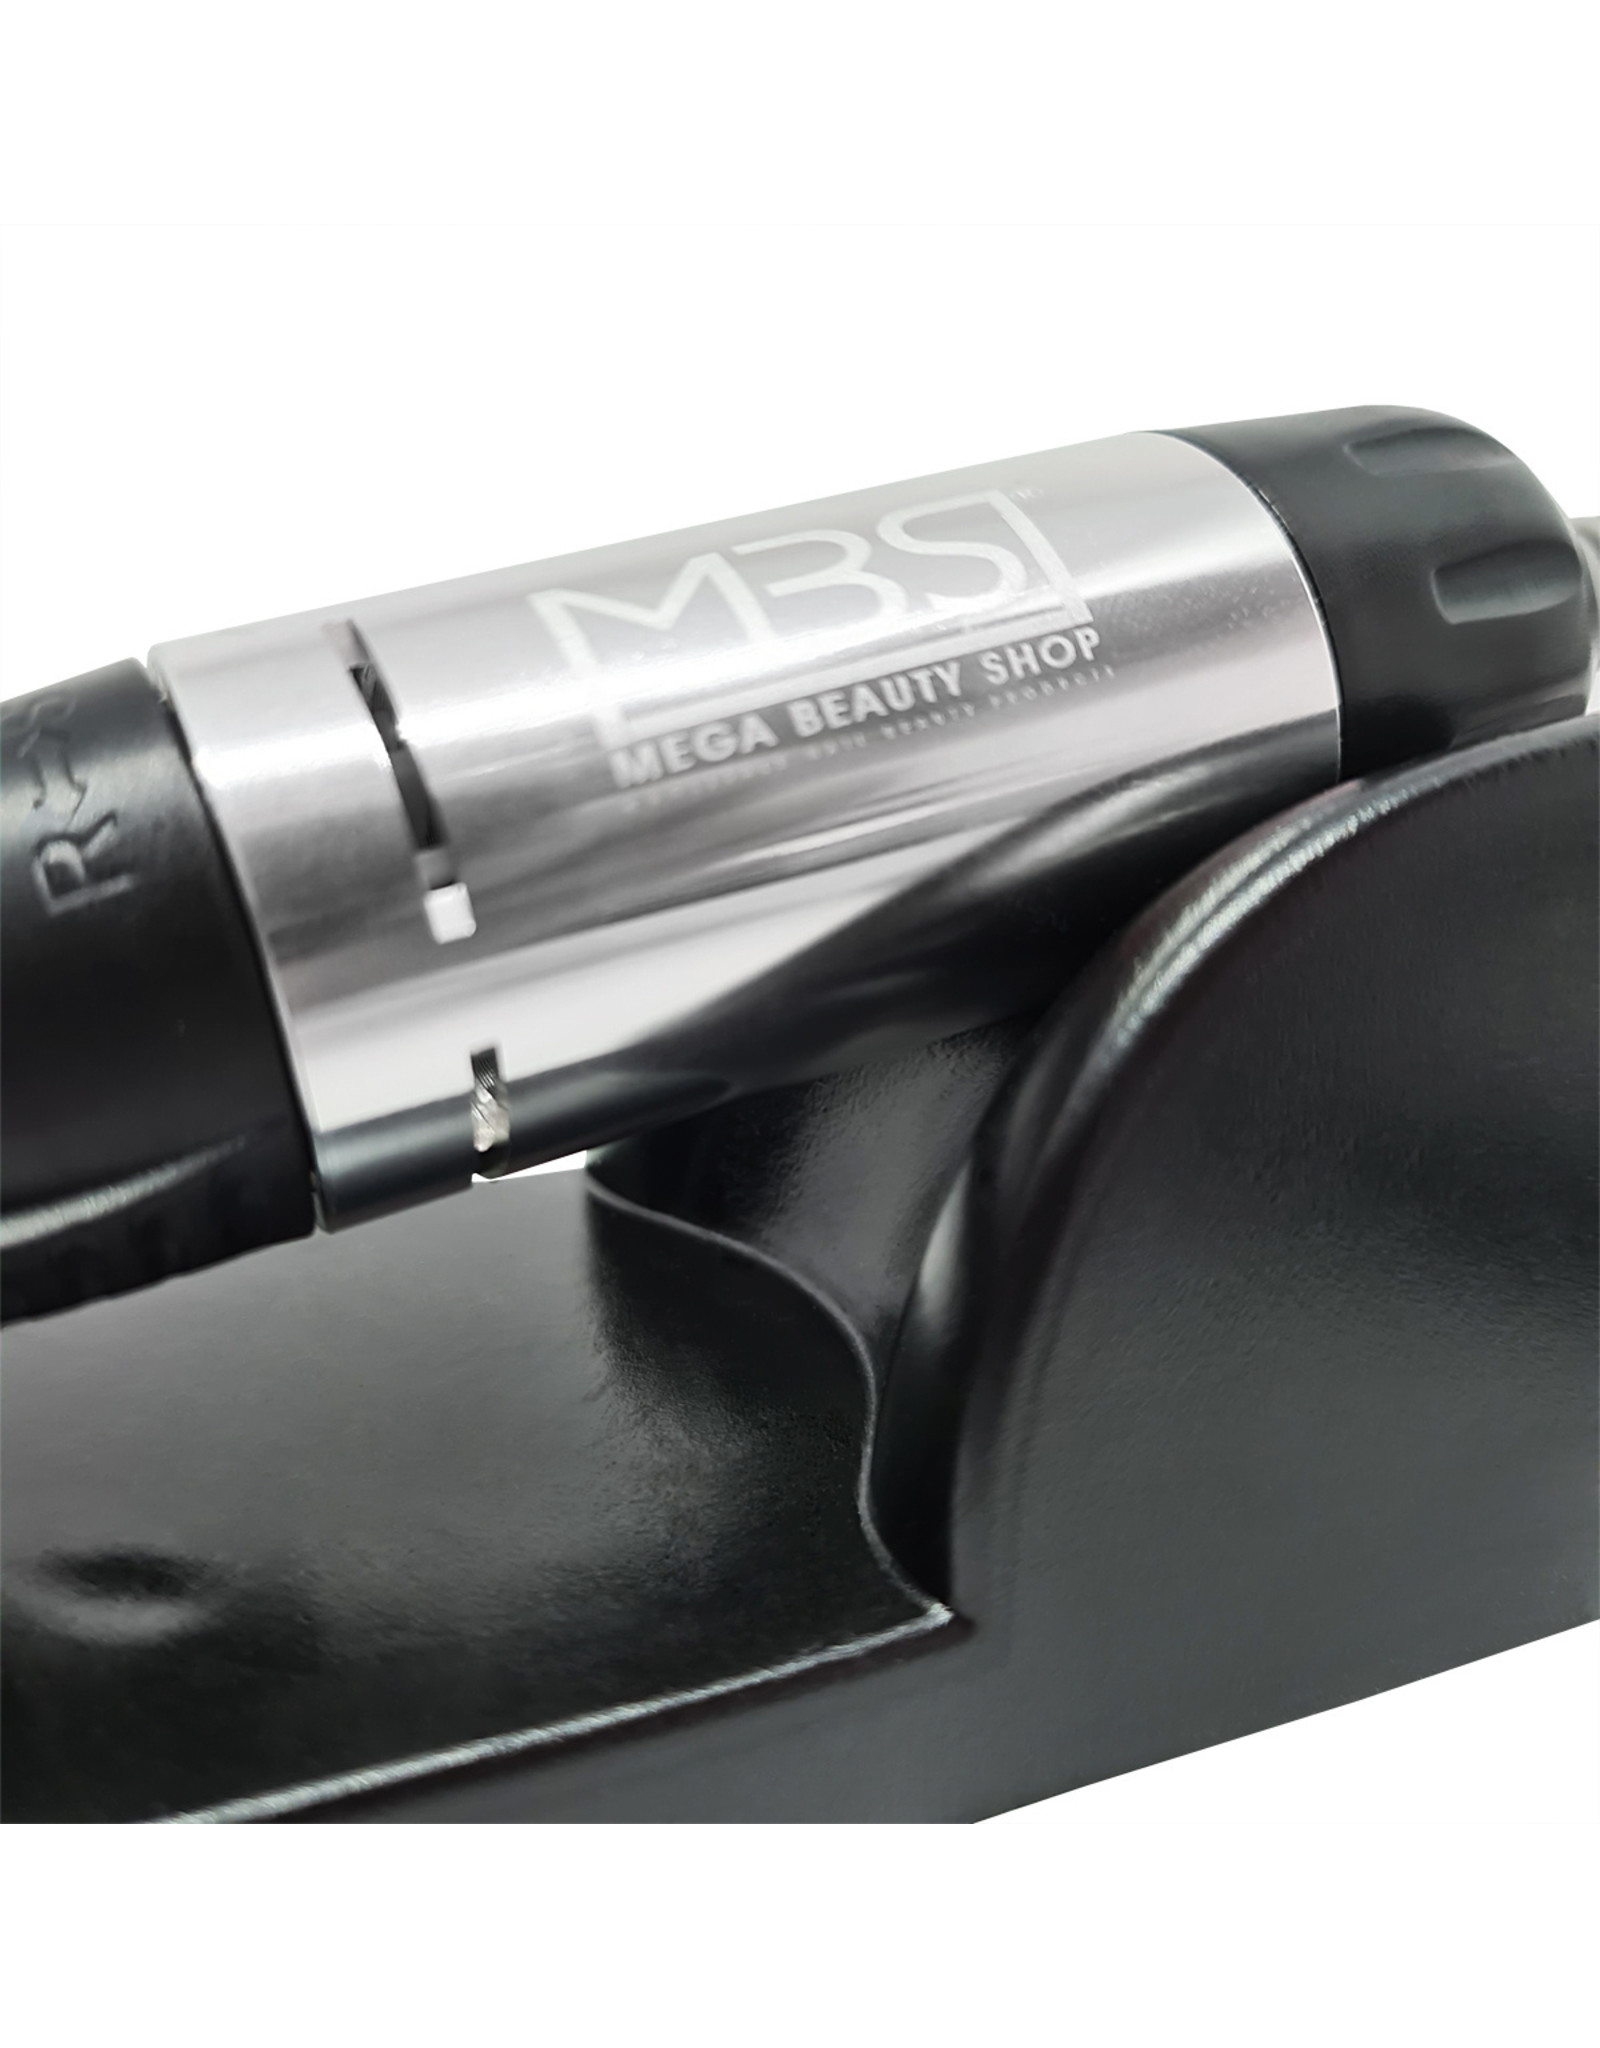 Mega Beauty Shop® Nagelfrees JD400 35Watt Originele MBS®